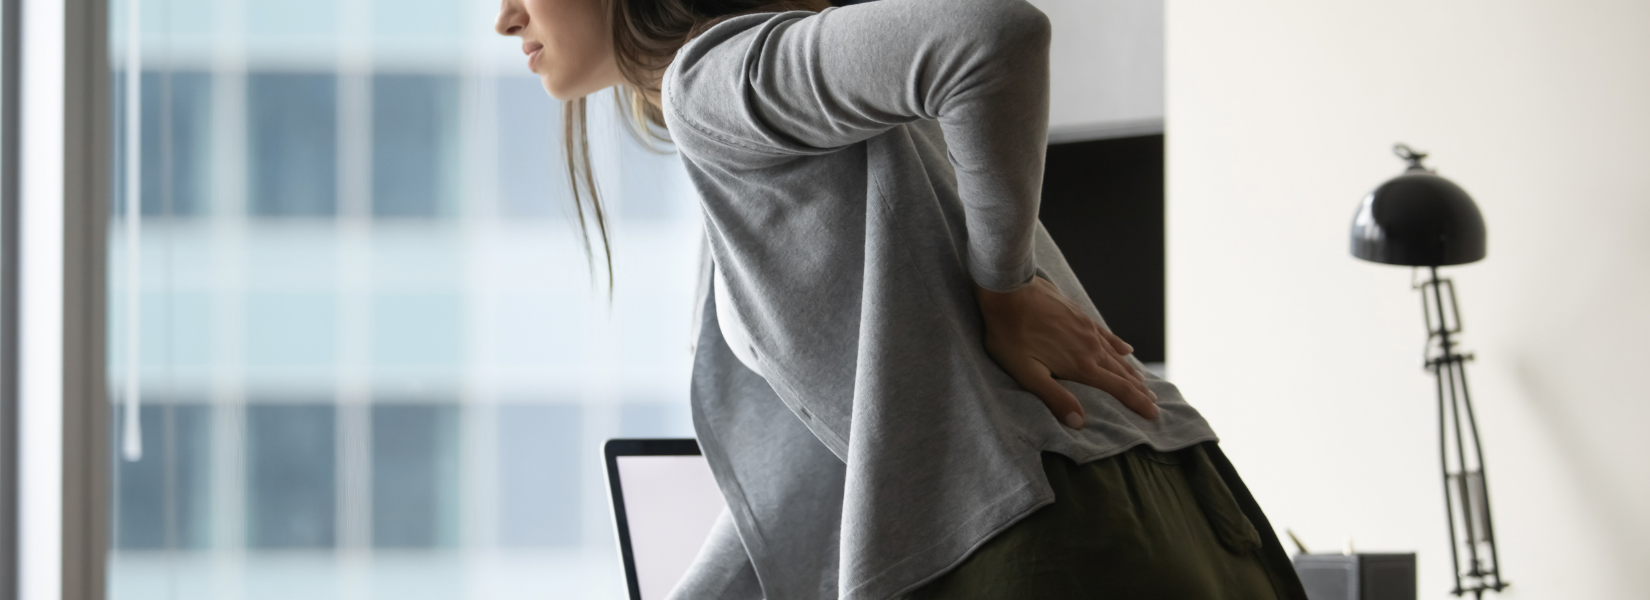 Recurrent Lower Back Pain and the Core